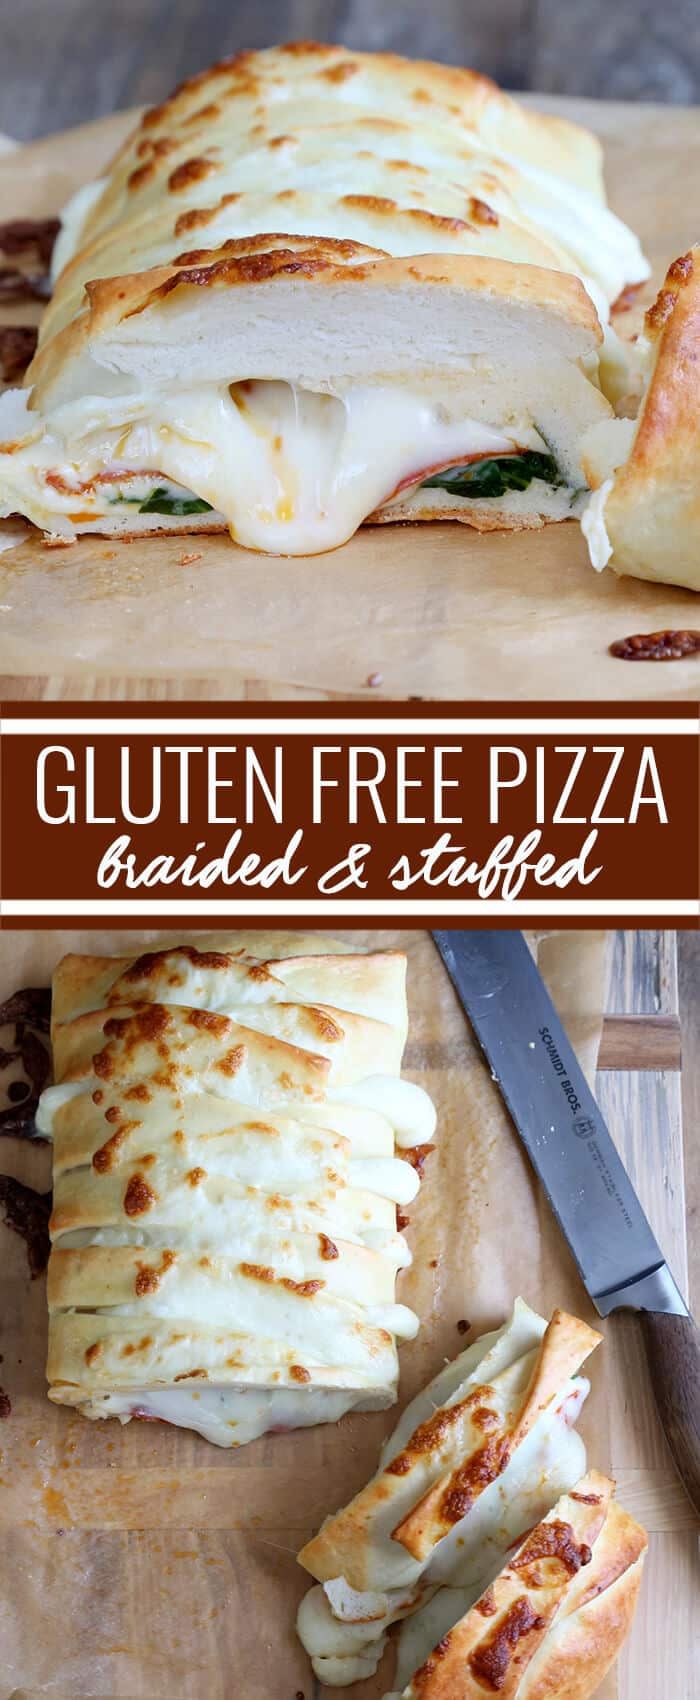 The perfect gluten free pizza crust, stuffed full of spinach, pepperoni and, of course, plenty of cheese. This pizza dough handles so beautifully and tastes so authentic, you won't believe it's gluten free! https://glutenfreeonashoestring.com/braided-stuffed-gluten-free-pizza/